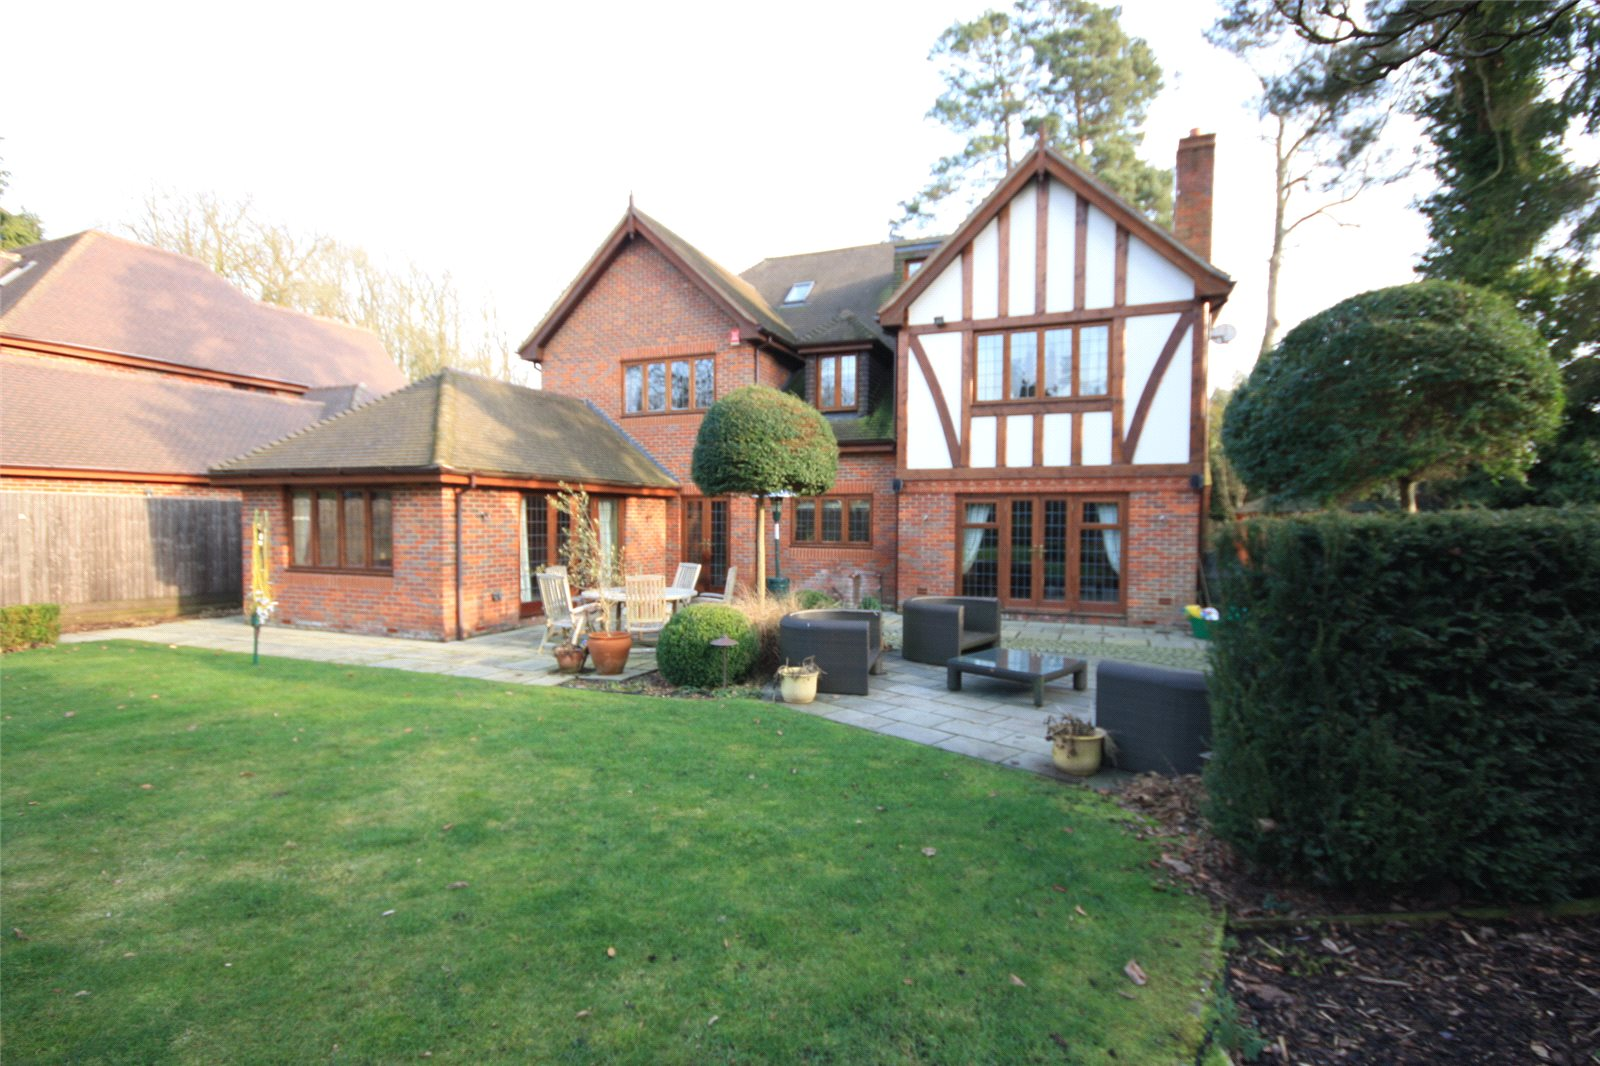 Additional photo for property listing at Deadhearn Lane, Chalfont St Giles, Buckinghamshire, HP8 Chalfont St Giles, Inghilterra